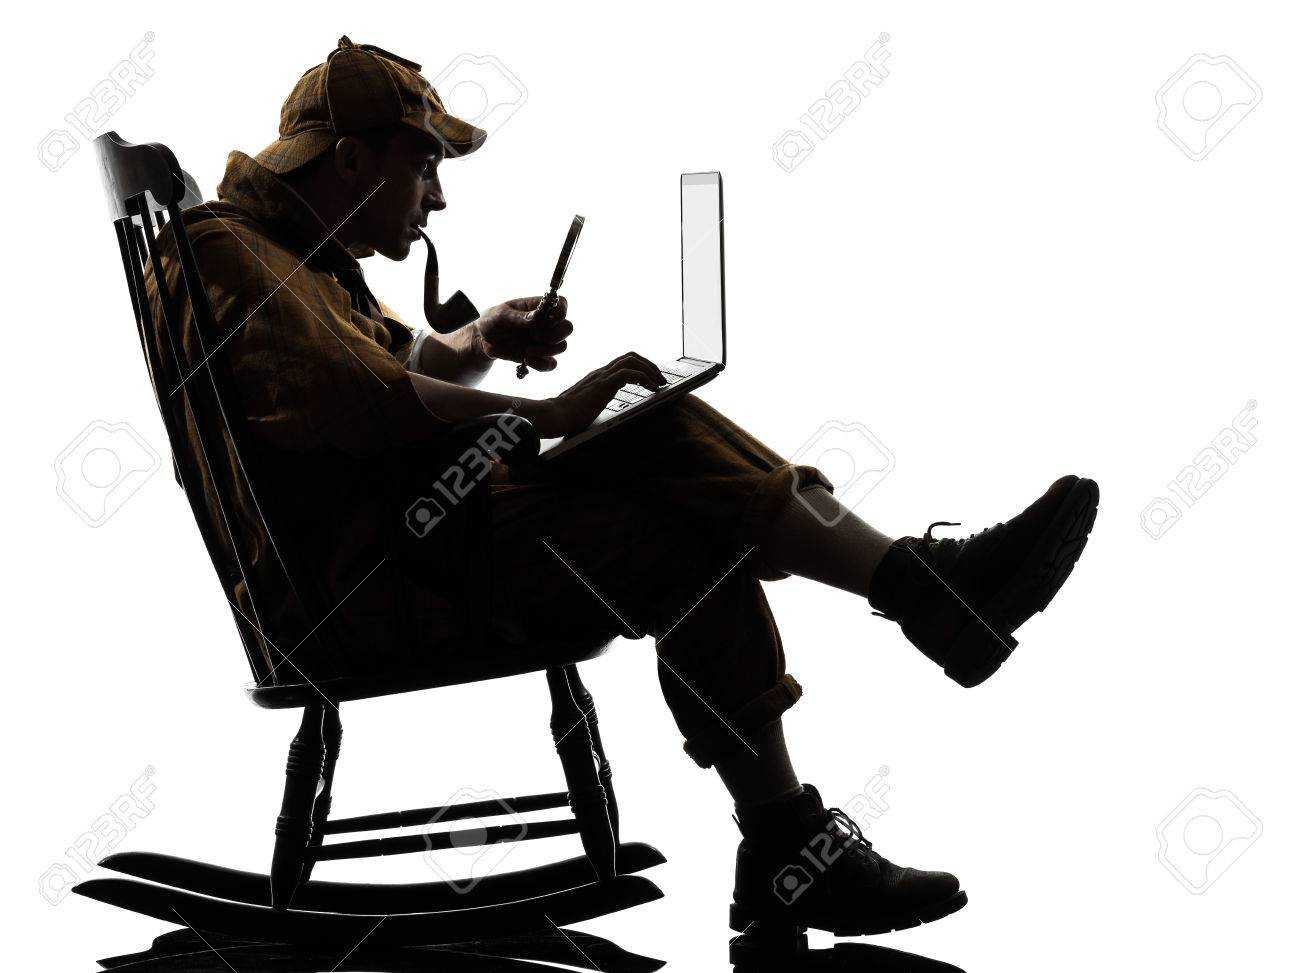 Exceptionnel Private Investigator With Computer Laptop Silhouette Sitting In Rocking  Chair In Studio On White Background Stock